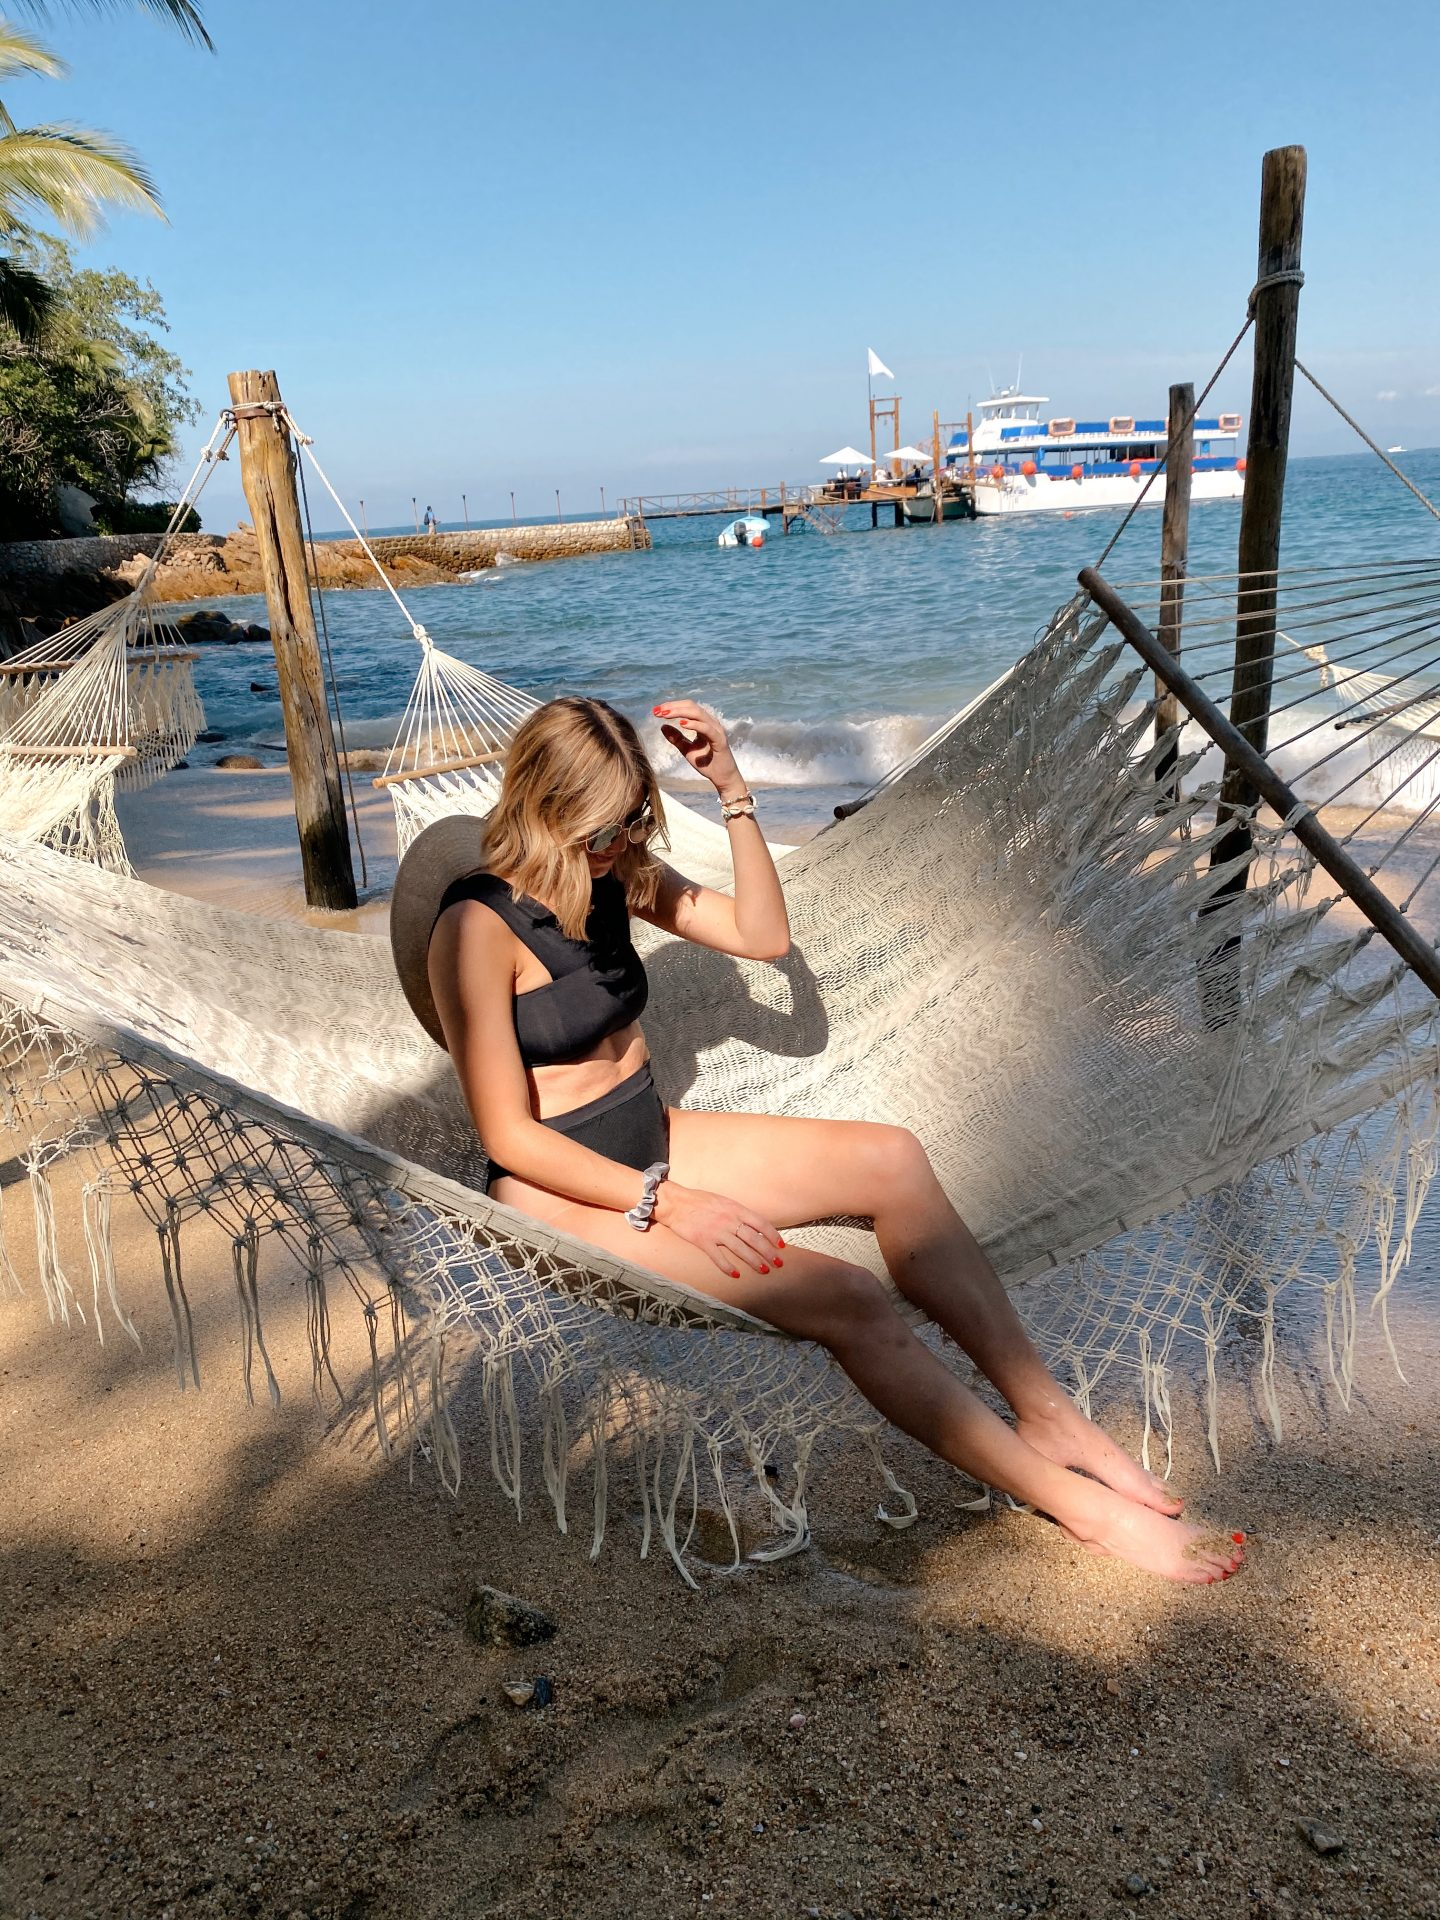 Summer Swimsuits by popular San Diego fashion blog, Navy Grace: image of a woman sitting in a macrame hammock and wearing a black bikini and straw hat.